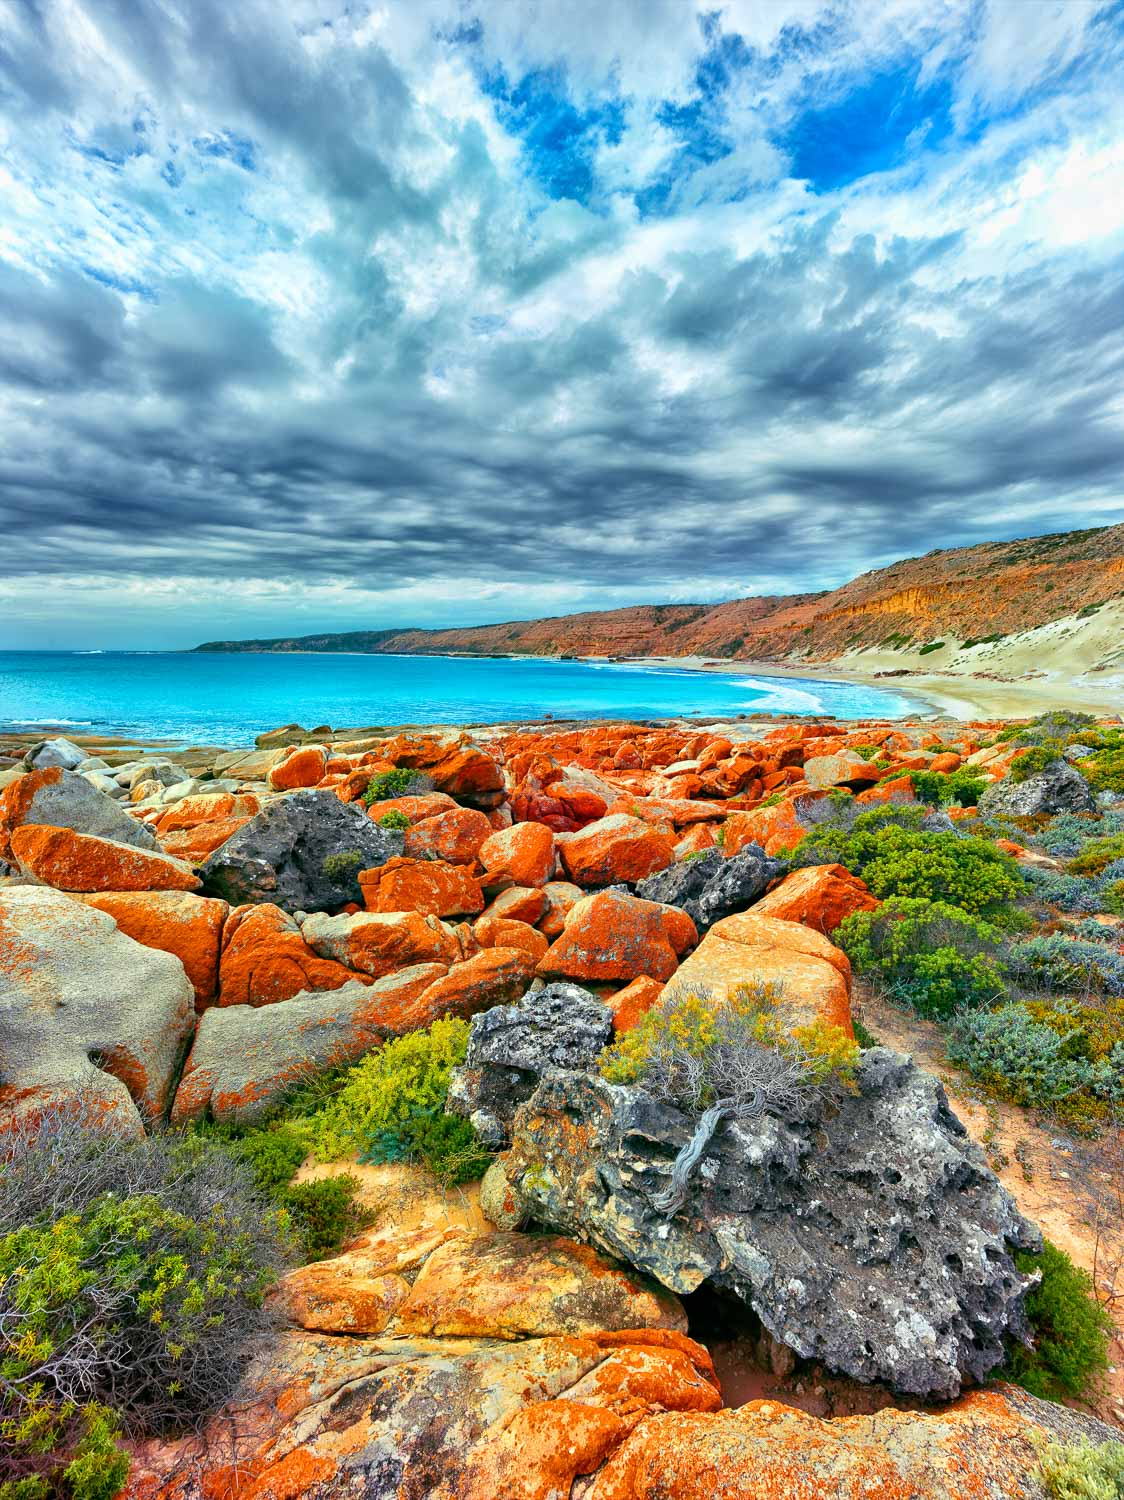 A pretty little coastal haven on the Eyre Peninsula with orange lichen on rocks in the foreground, South Australia.